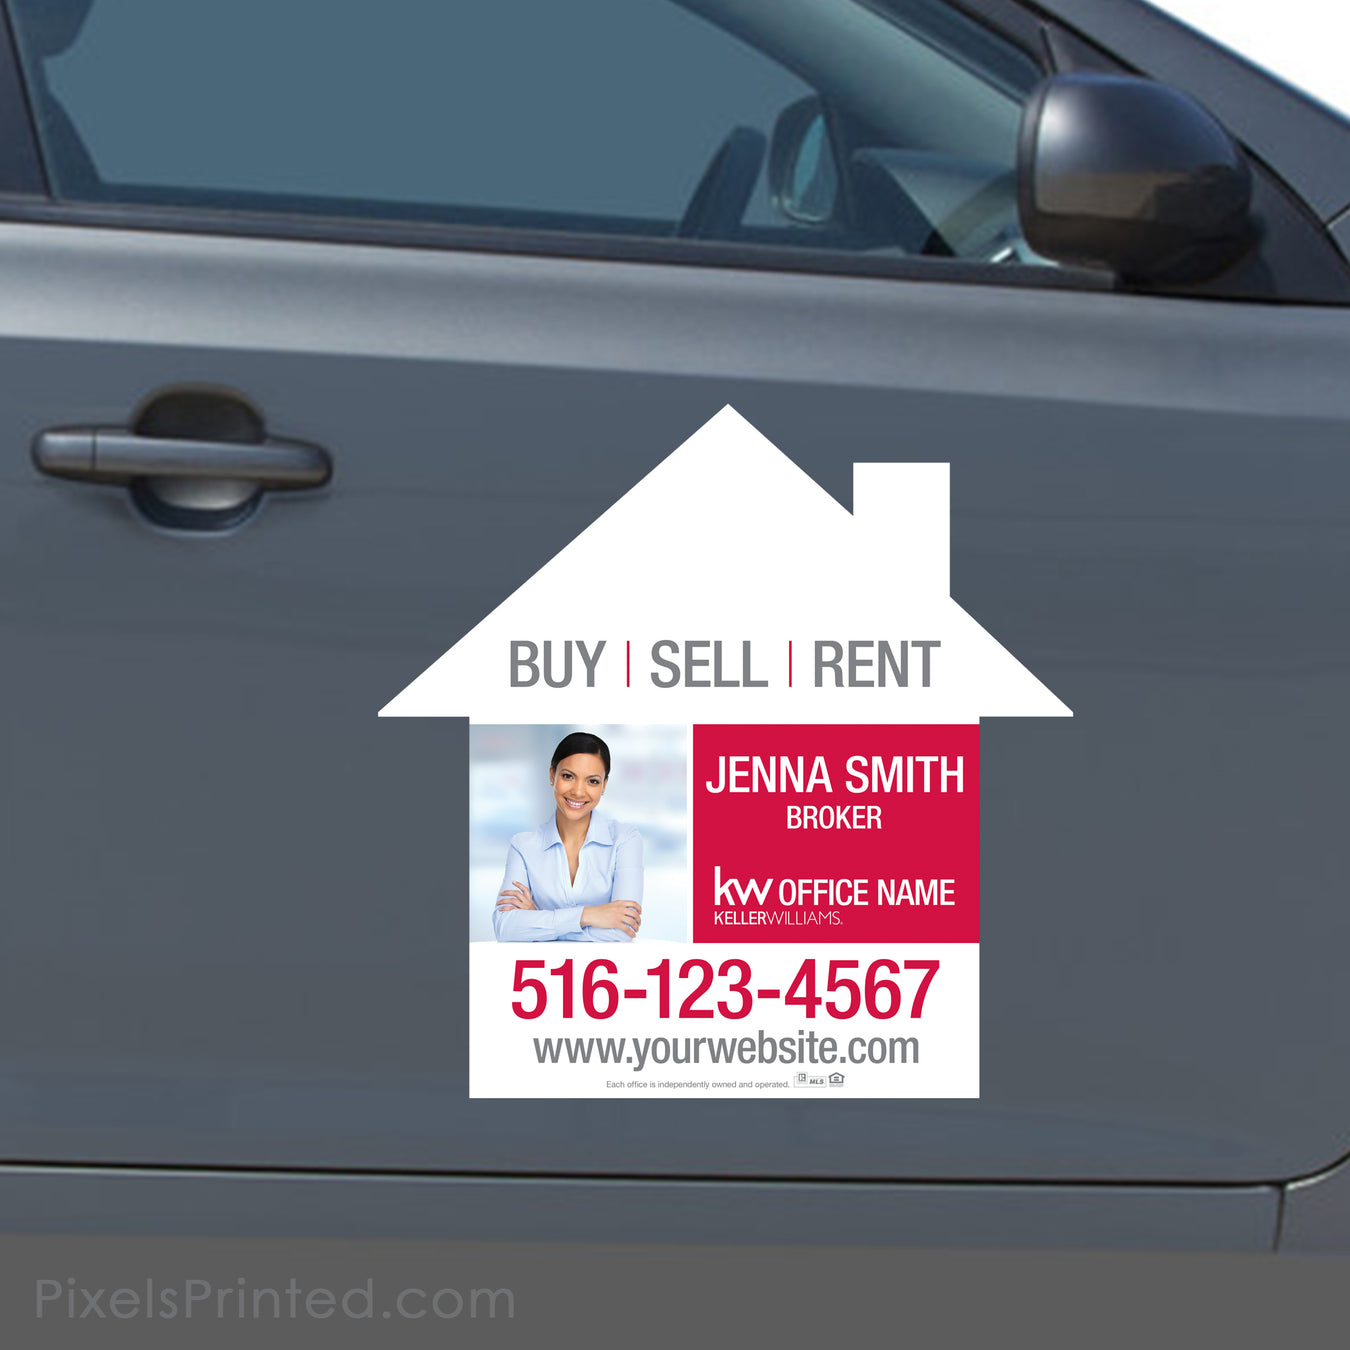 keller williams car magnets, real estate car magnets, house shaped car magnets